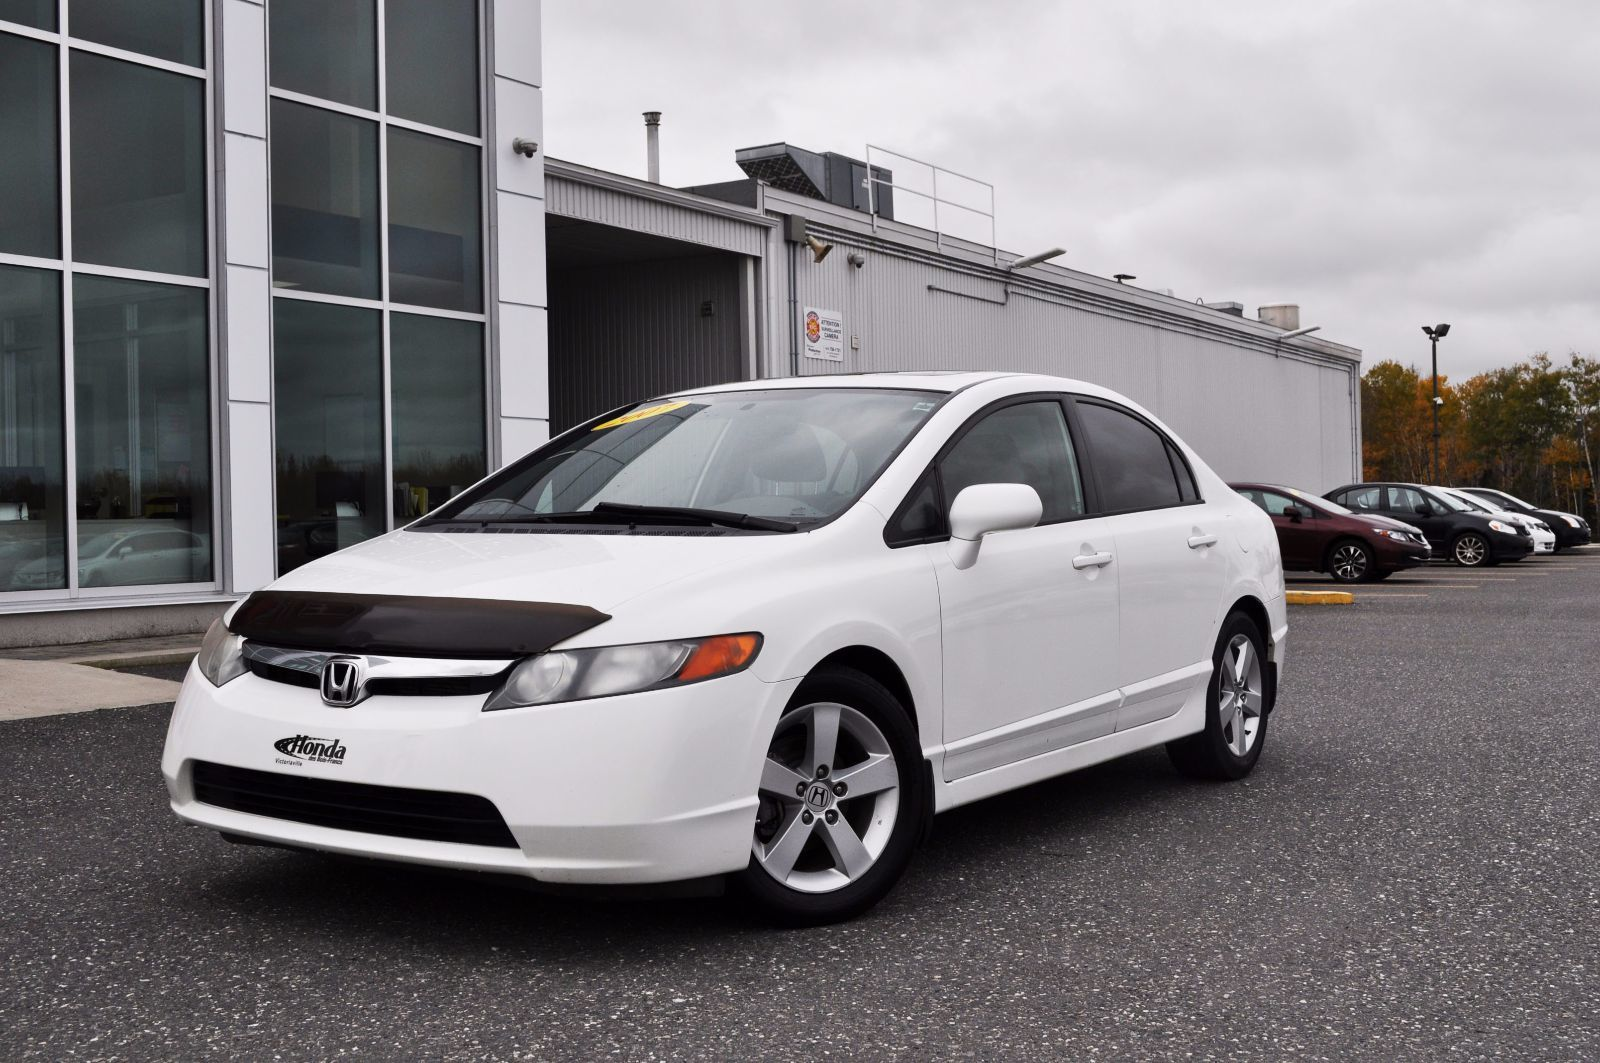 hight resolution of used 2007 honda civic sdn ex toit ouvrant mags in victoriaville used inventory honda victoriaville in victoriaville quebec